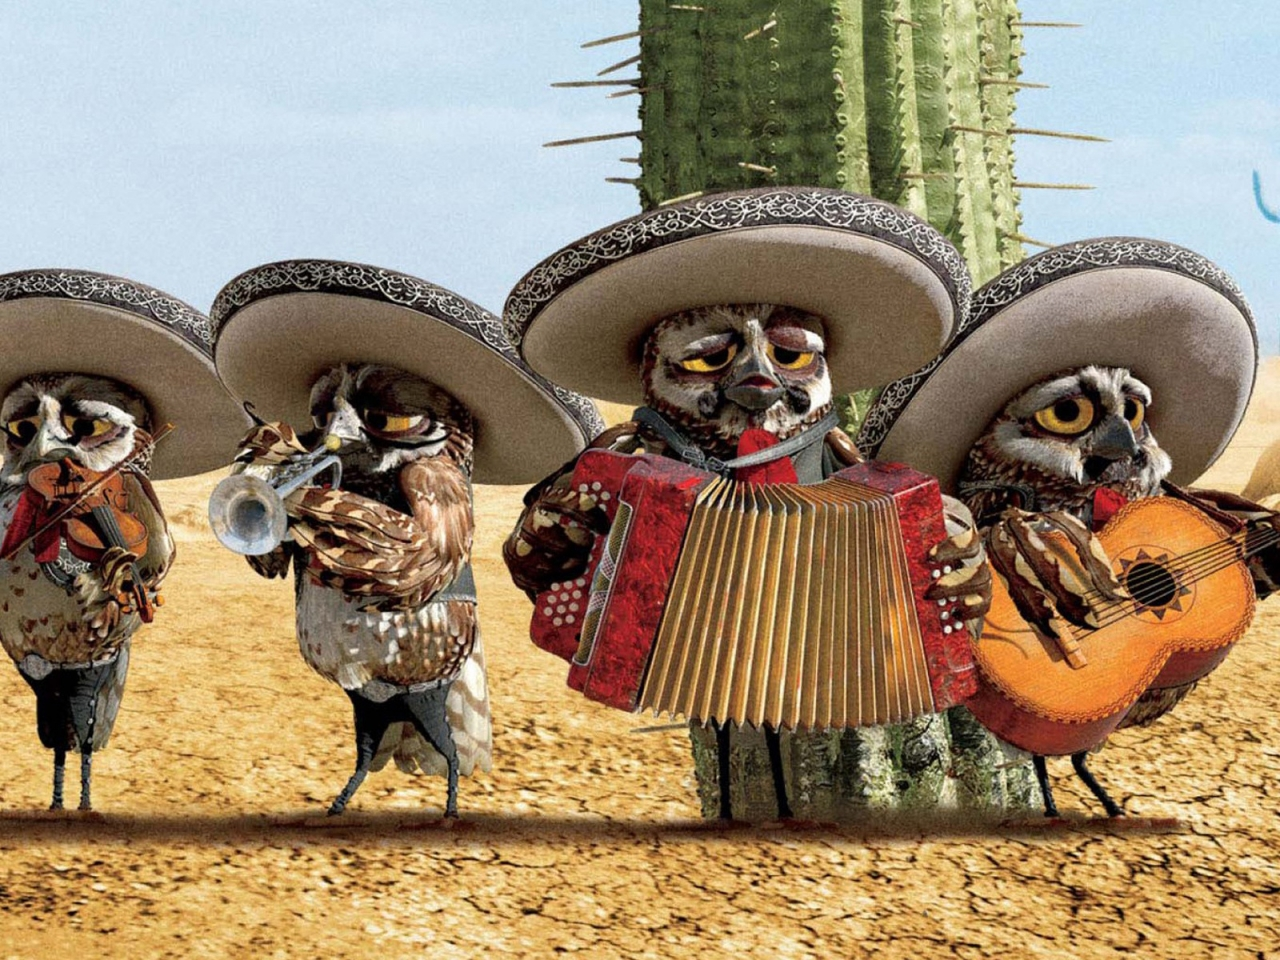 Rango Mariachi for 1280 x 960 resolution